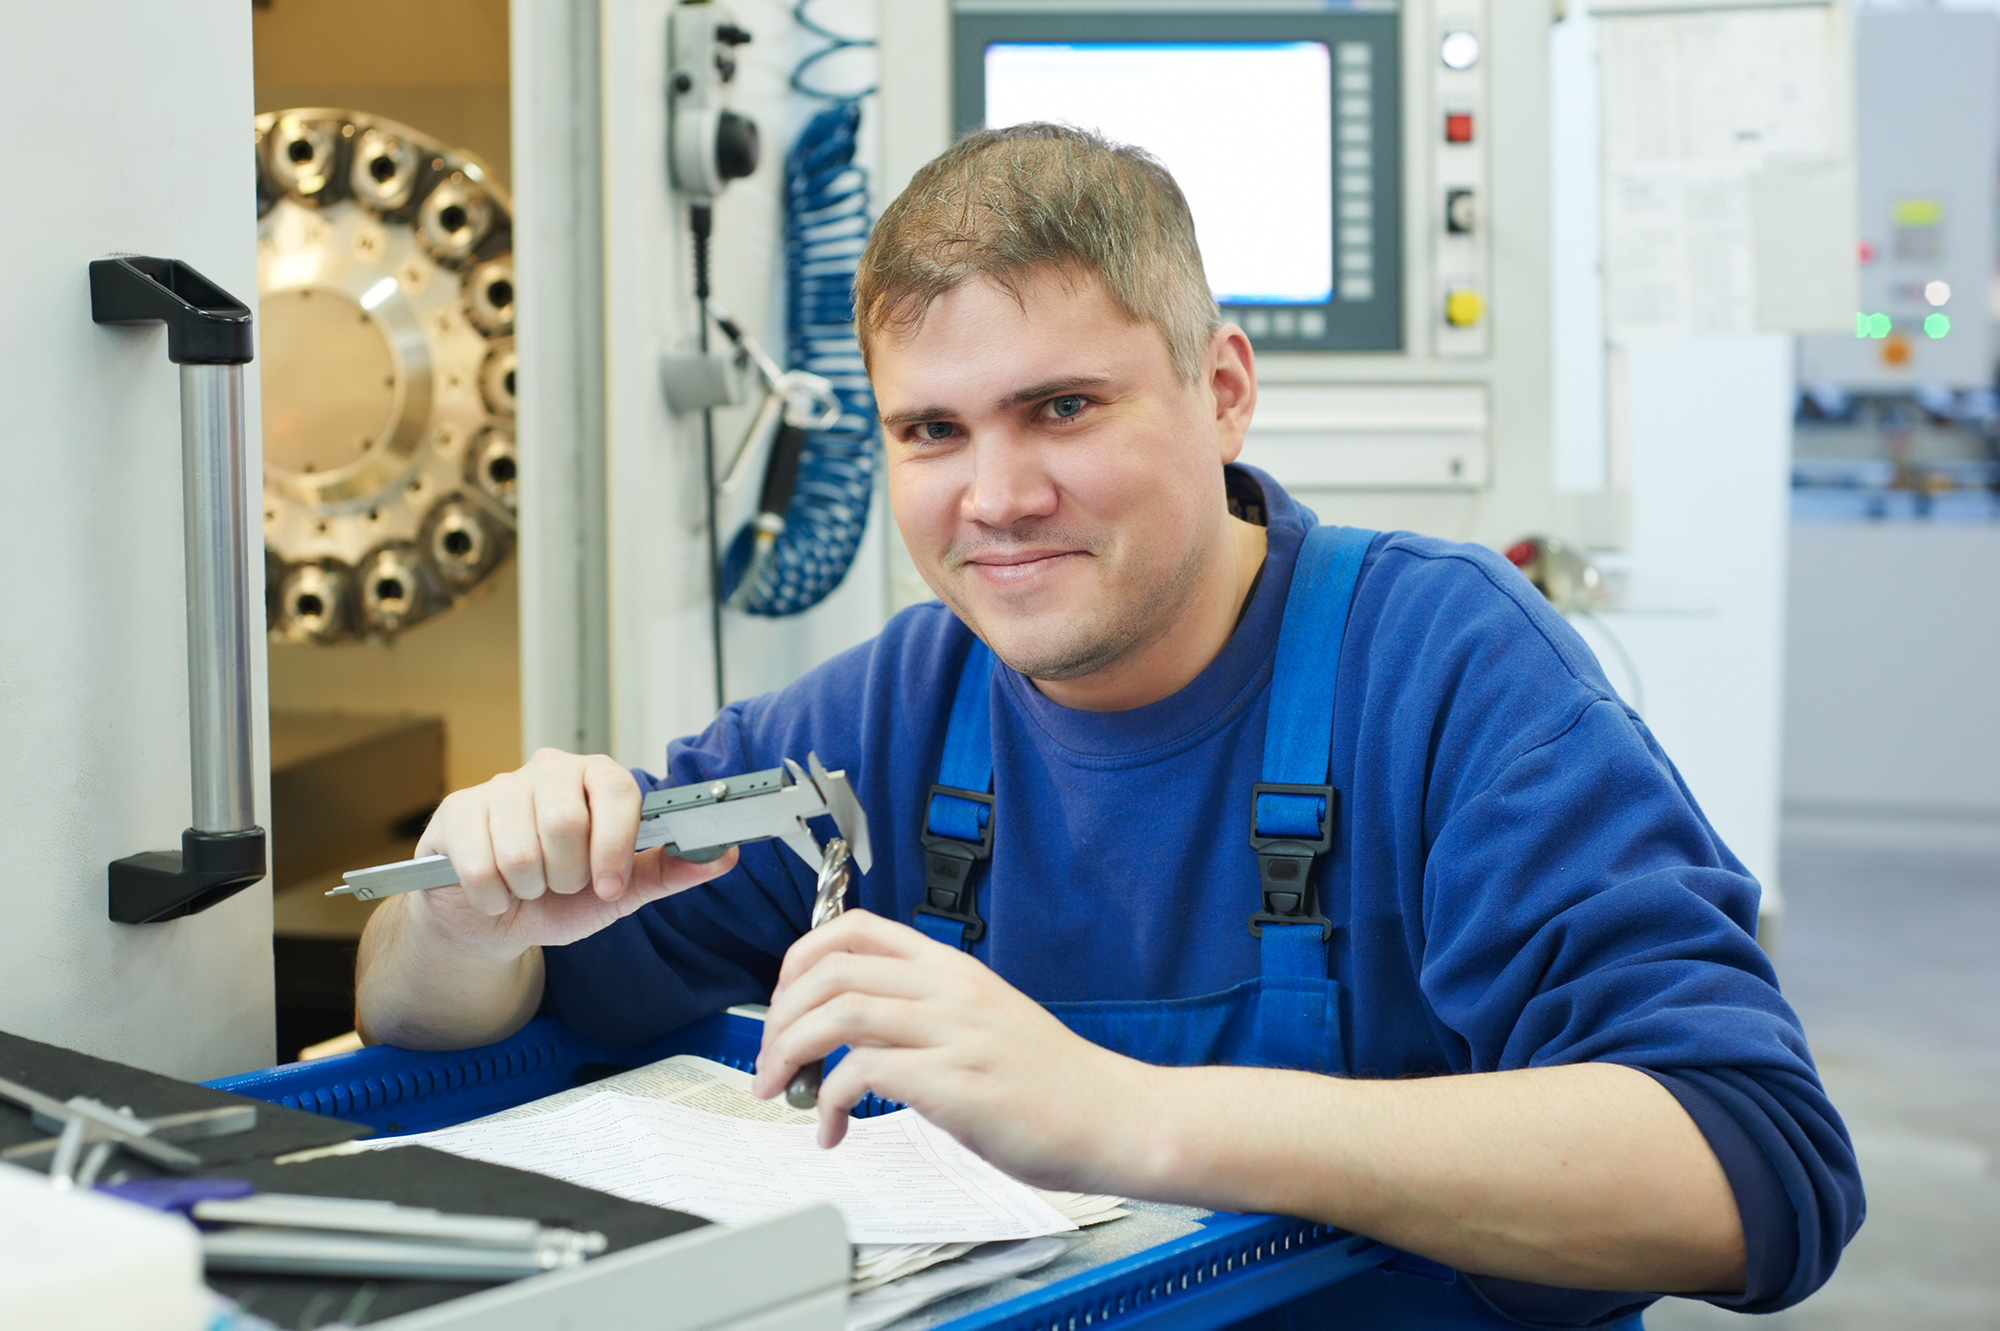 Corporate Services, Inc. is hiring Quality Control Inspectors — up to $17.00/hour — apply today!